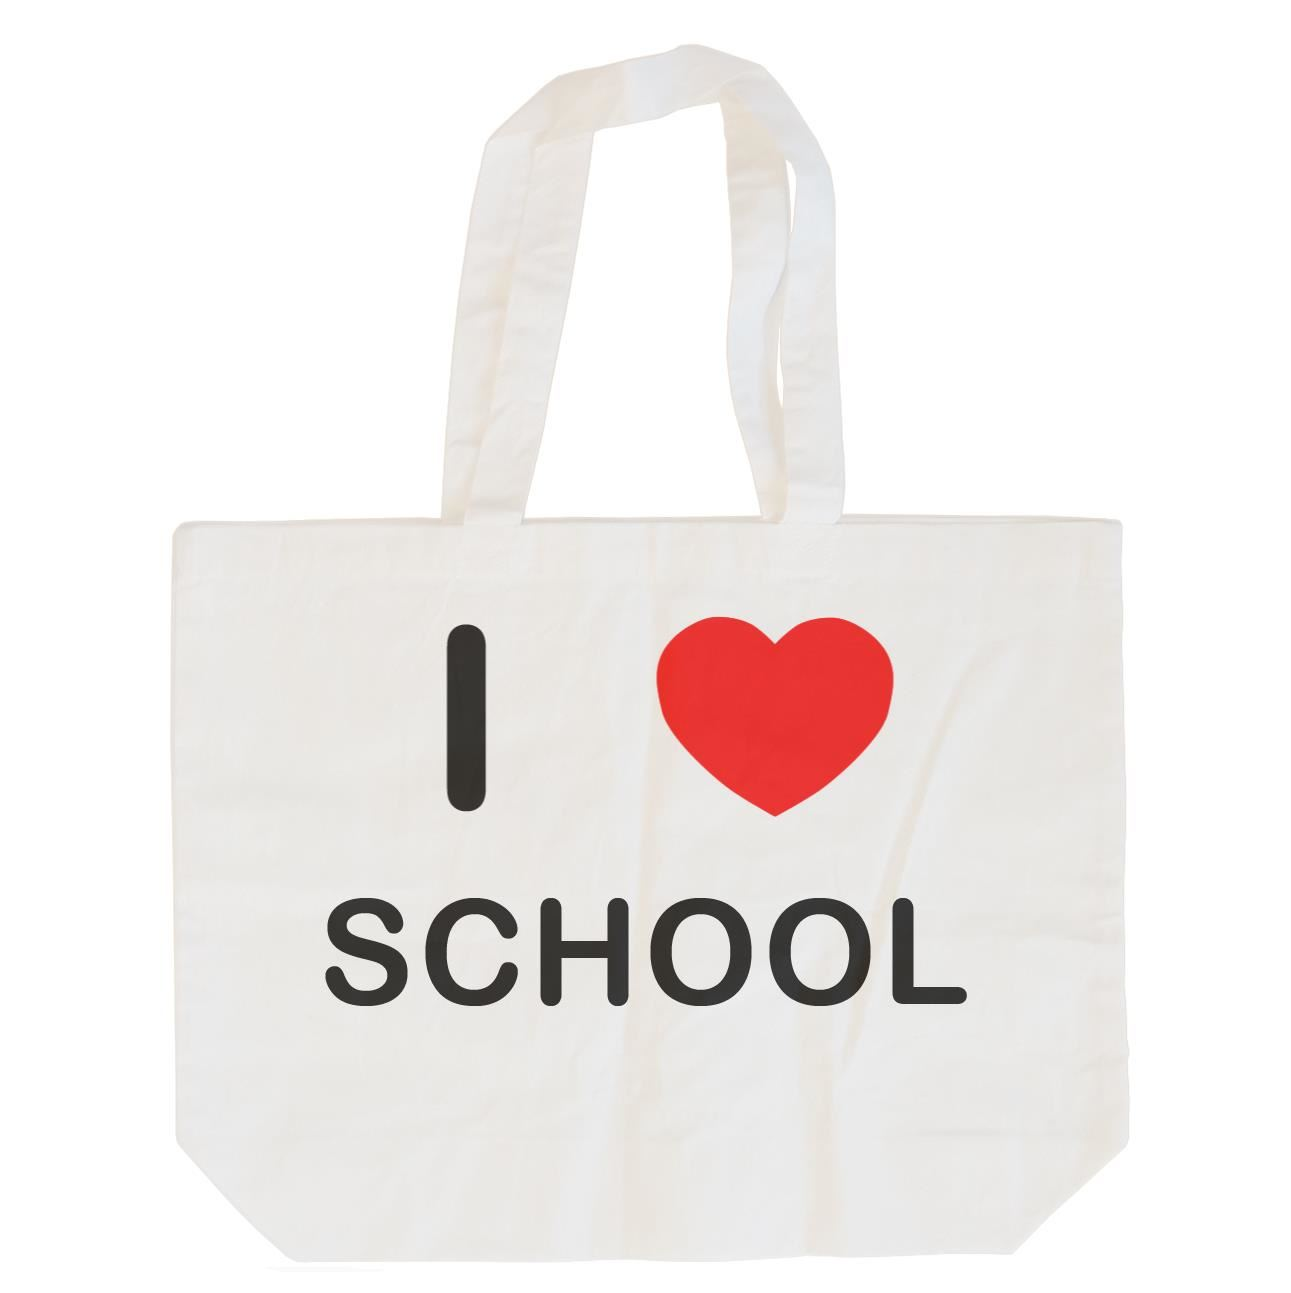 I Love School - Cotton Bag | Size choice Tote, Shopper or Sling